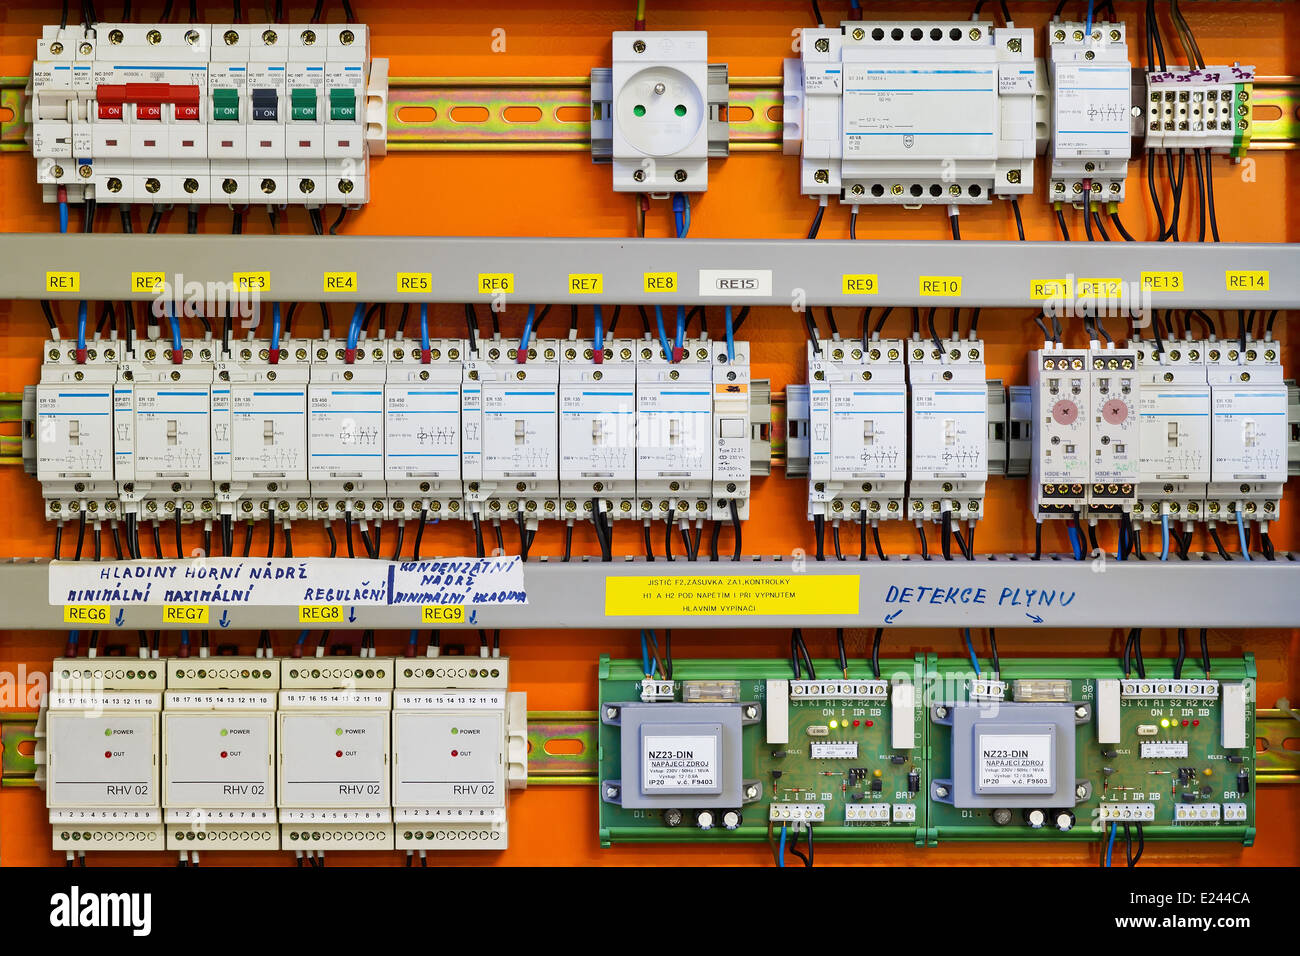 Circuit Breaker Cabinet Circuit Breaker Panel Stock Photos Circuit Breaker Panel Stock